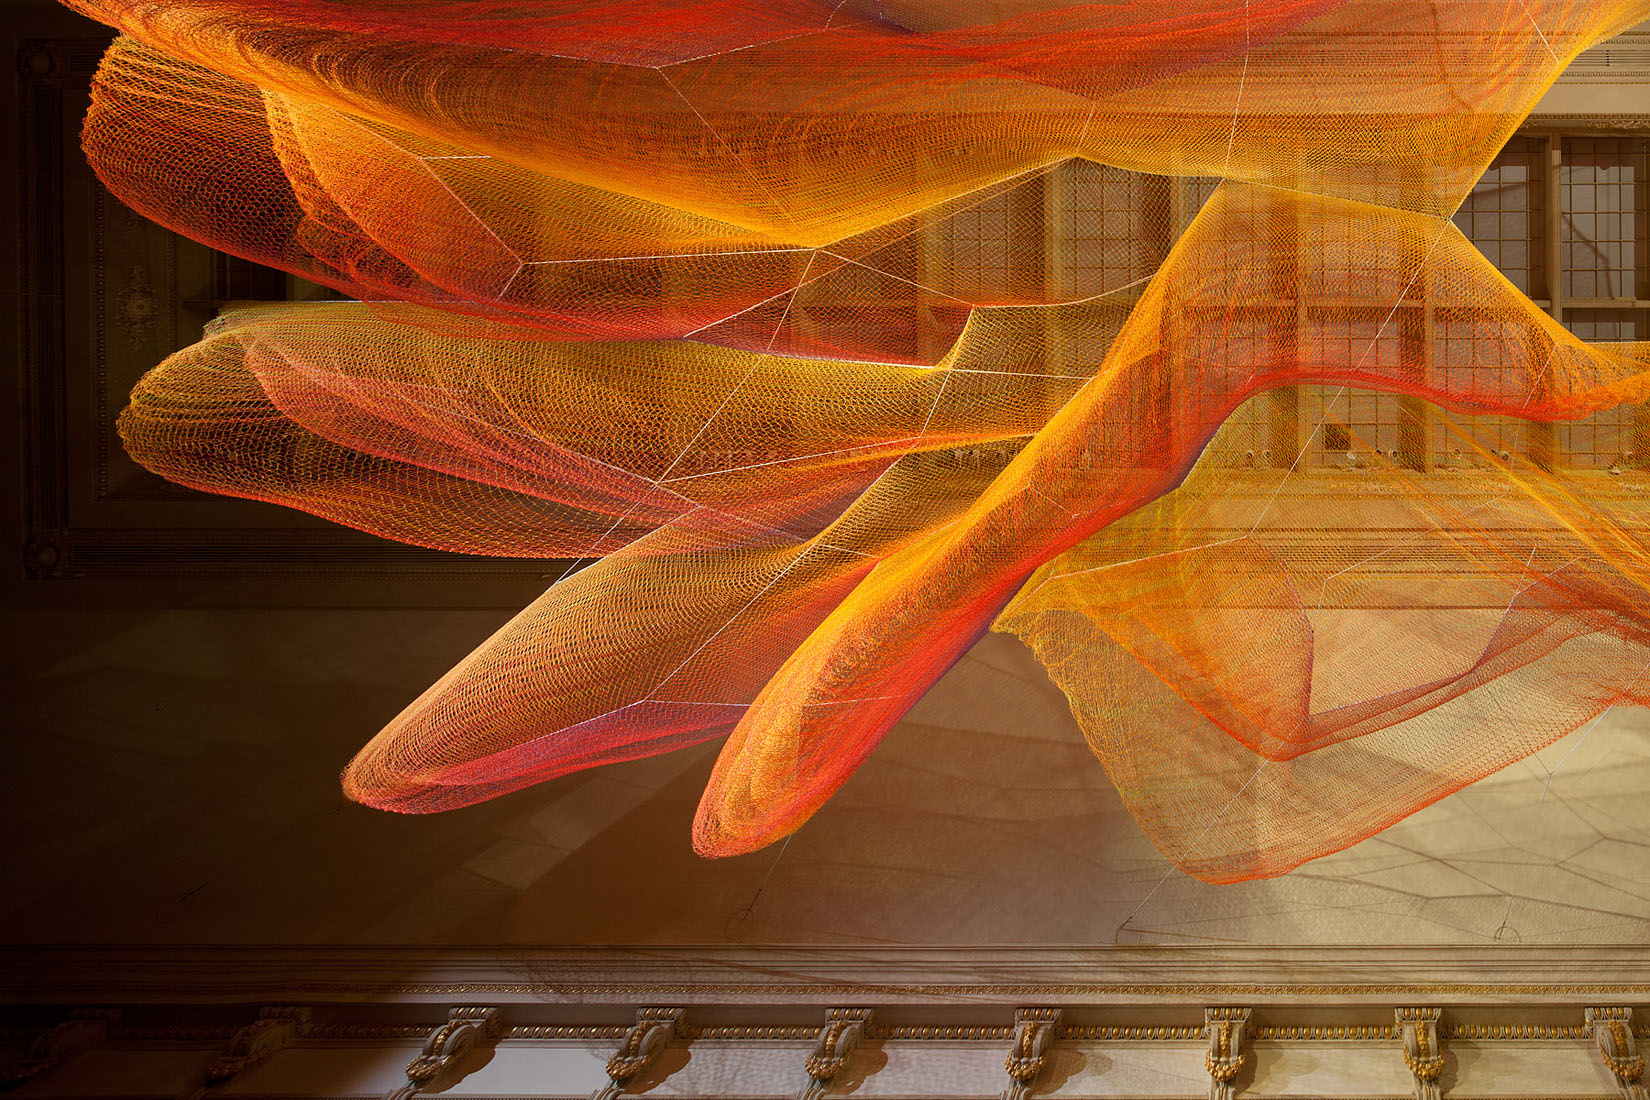 Janet Echelman1.8WONDER Exhibition 2015-16RENWICK GALLERYSmithsonianWashington, DC